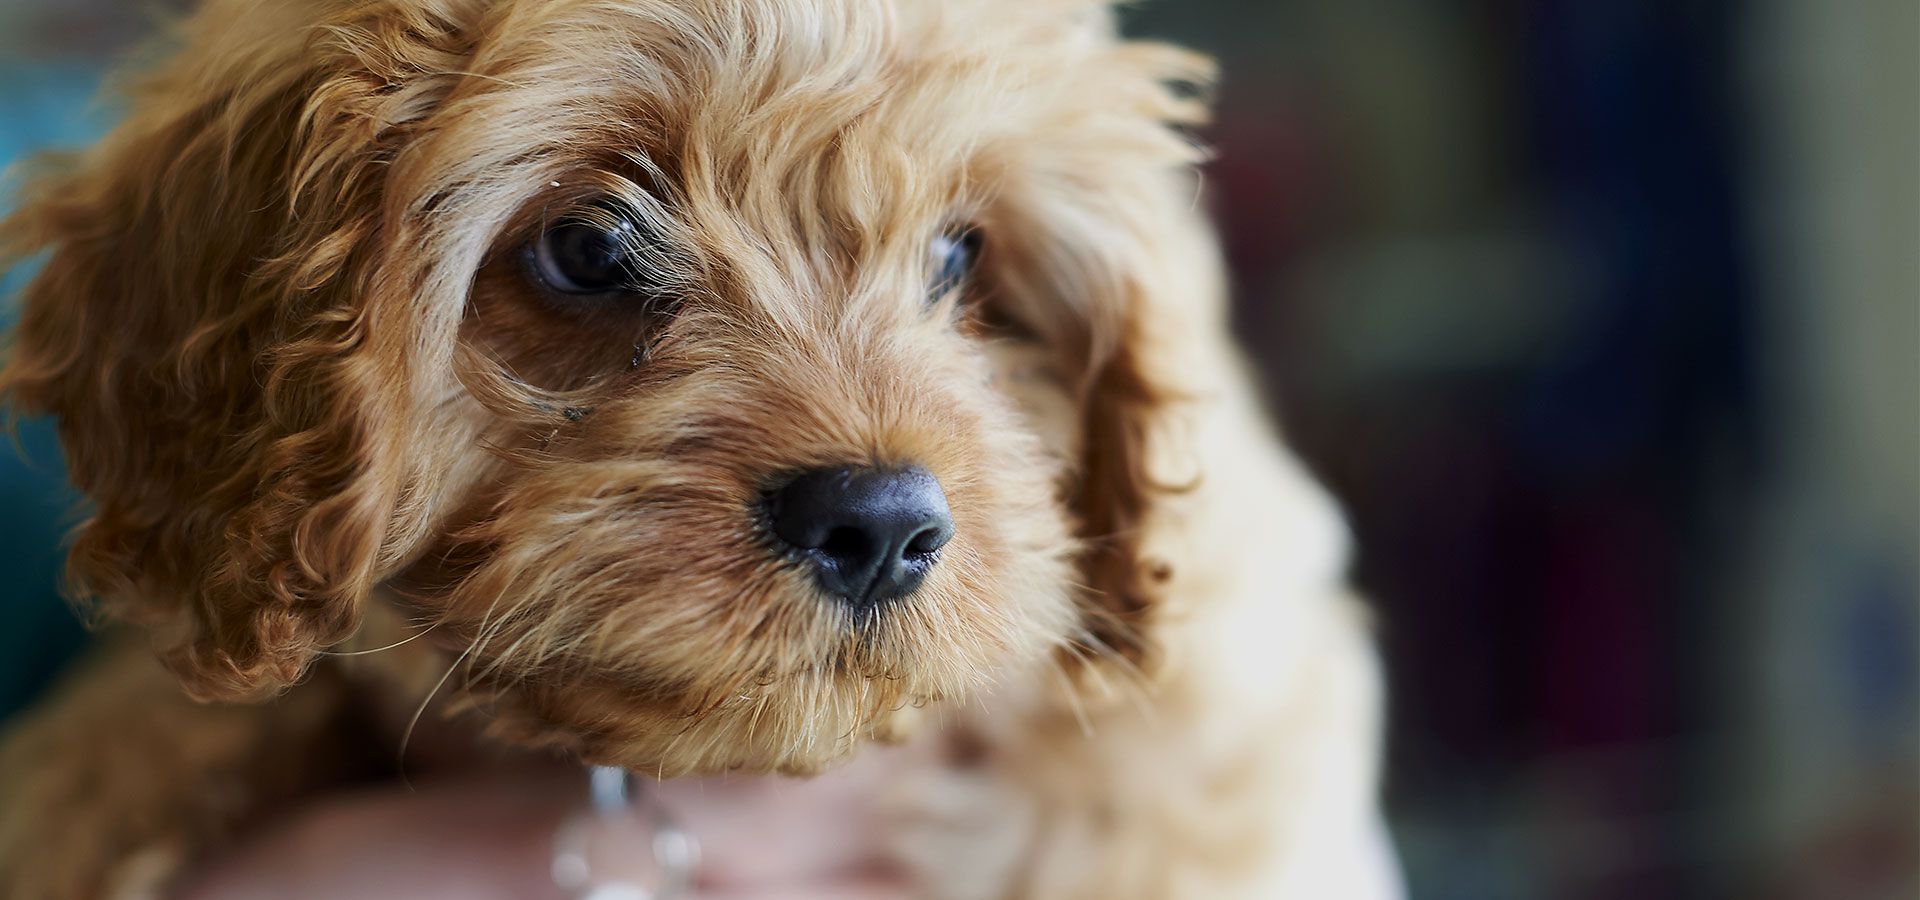 Having a dog reduces your risk of an early death